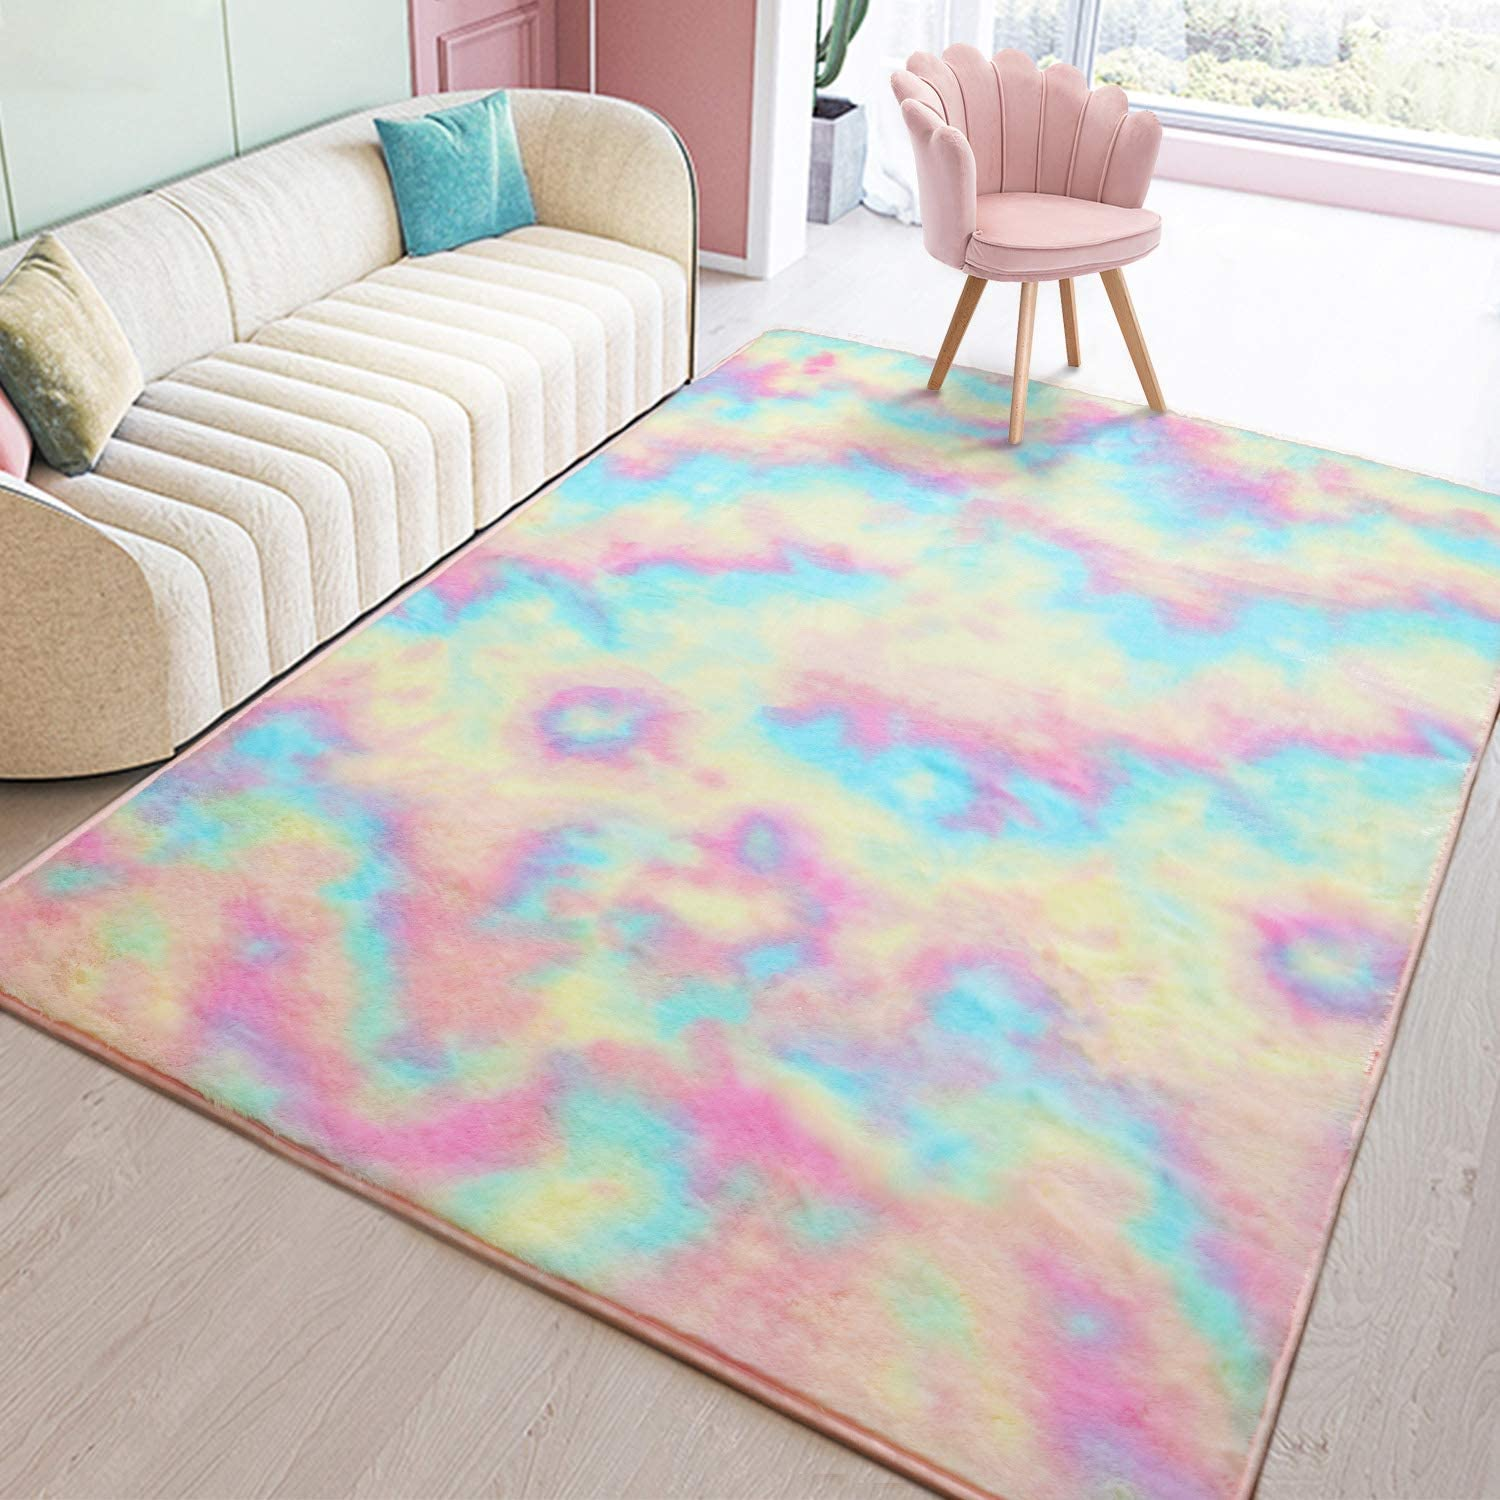 Toneed Soft Rainbow Rug for Girls Room - 3 x 5 Feet Fuzzy Cute Colorful Area Rugs for Kid Bedroom Nursery Home Decor Floor Carpet